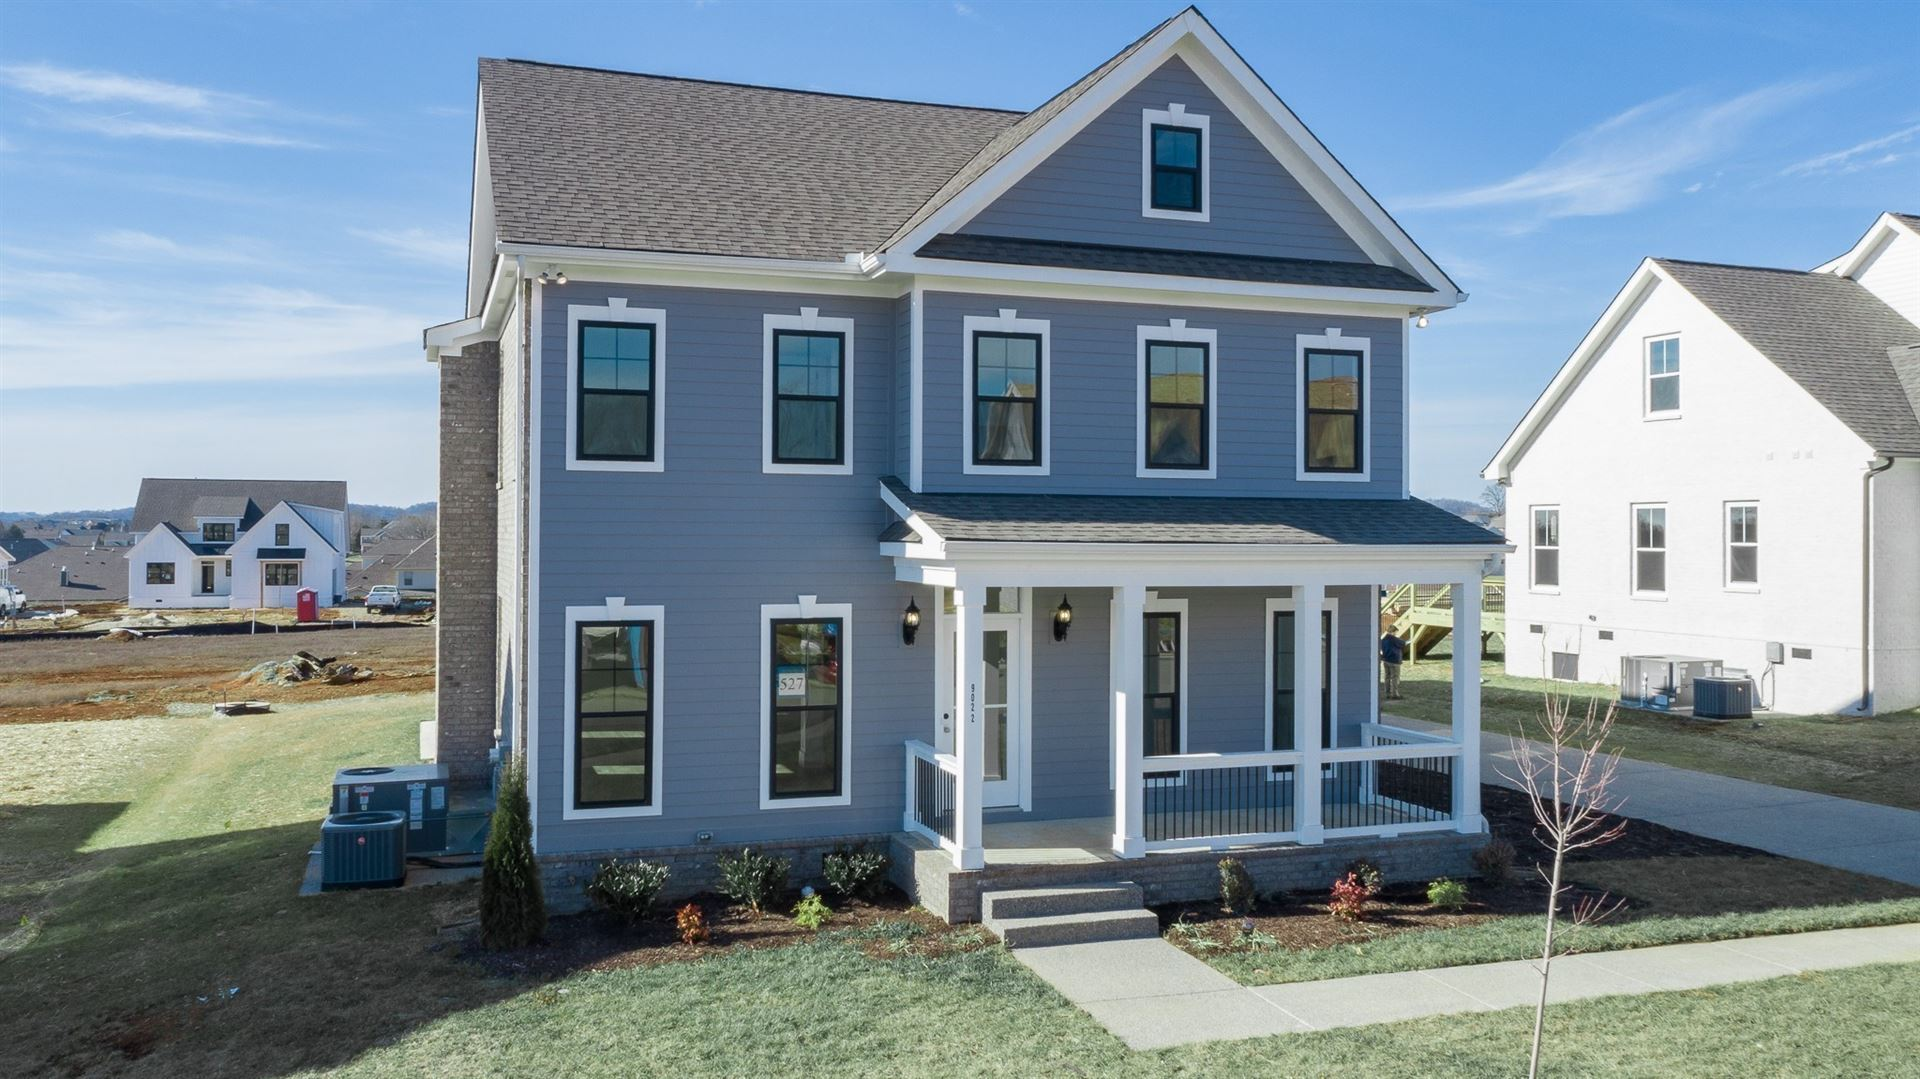 Photo of 8006 Brightwater Way Lot 481, Spring Hill, TN 37174 (MLS # 2292310)